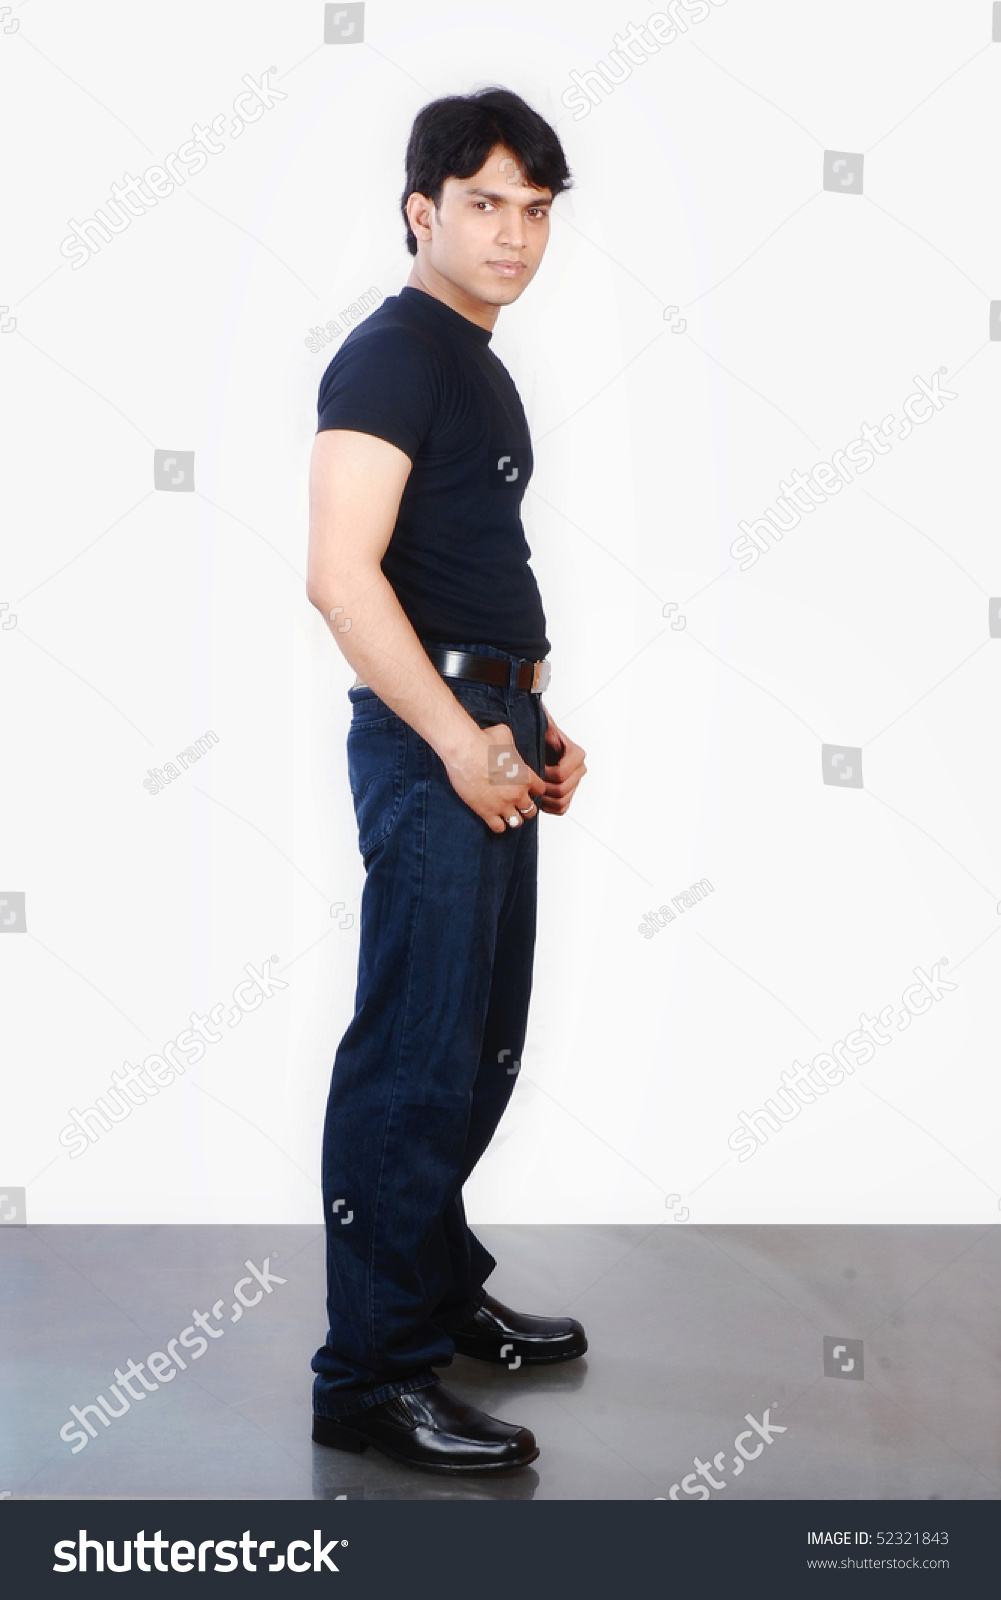 Black t shirt blue jeans - A Indian Male Boy Wearing Black T Shirt And Dark Blue Jeans Standing In Side